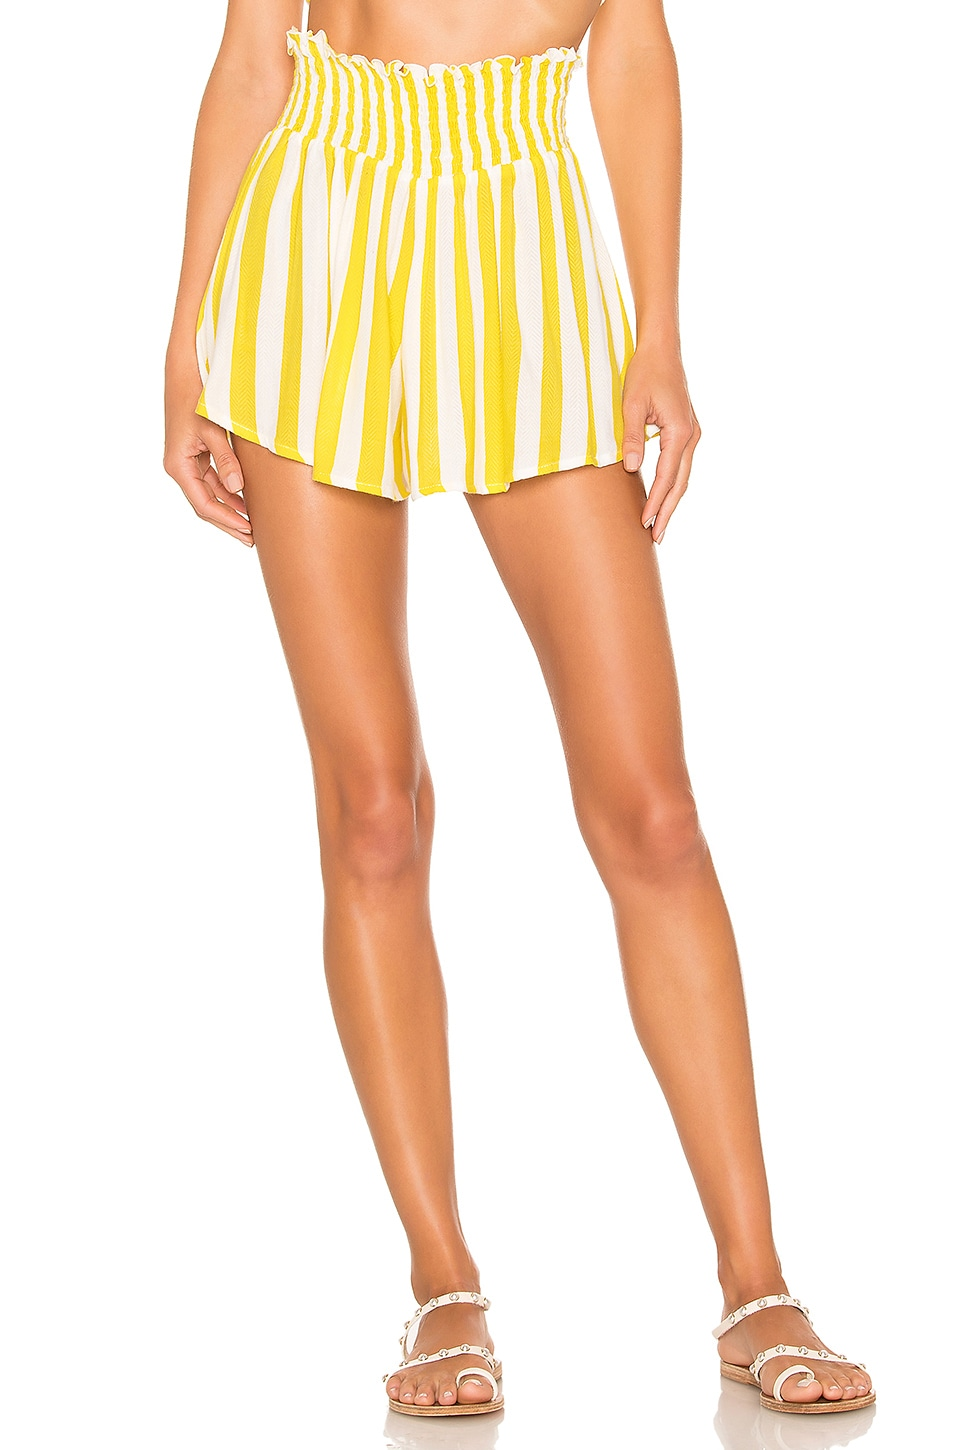 lovewave Milly Short in Chartreuse Stripe